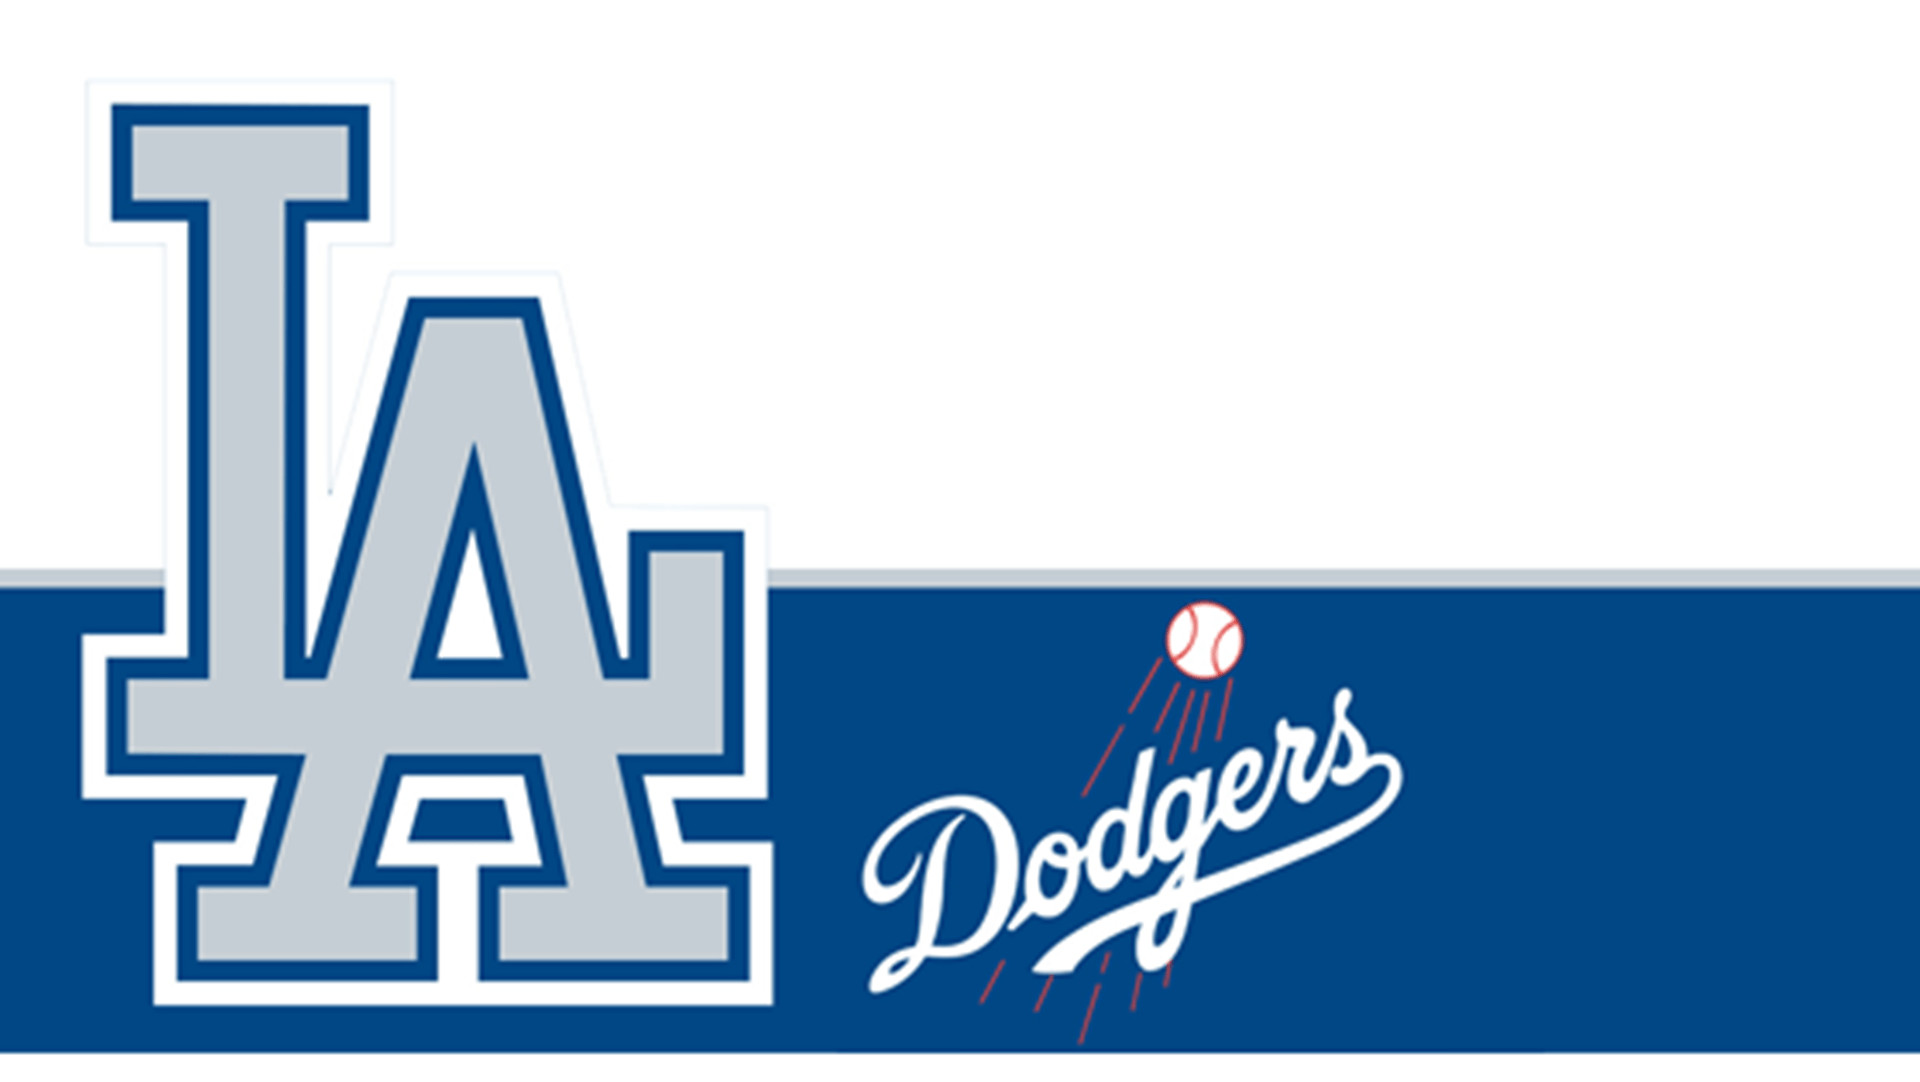 view image. Found on: dodgers-wallpapers